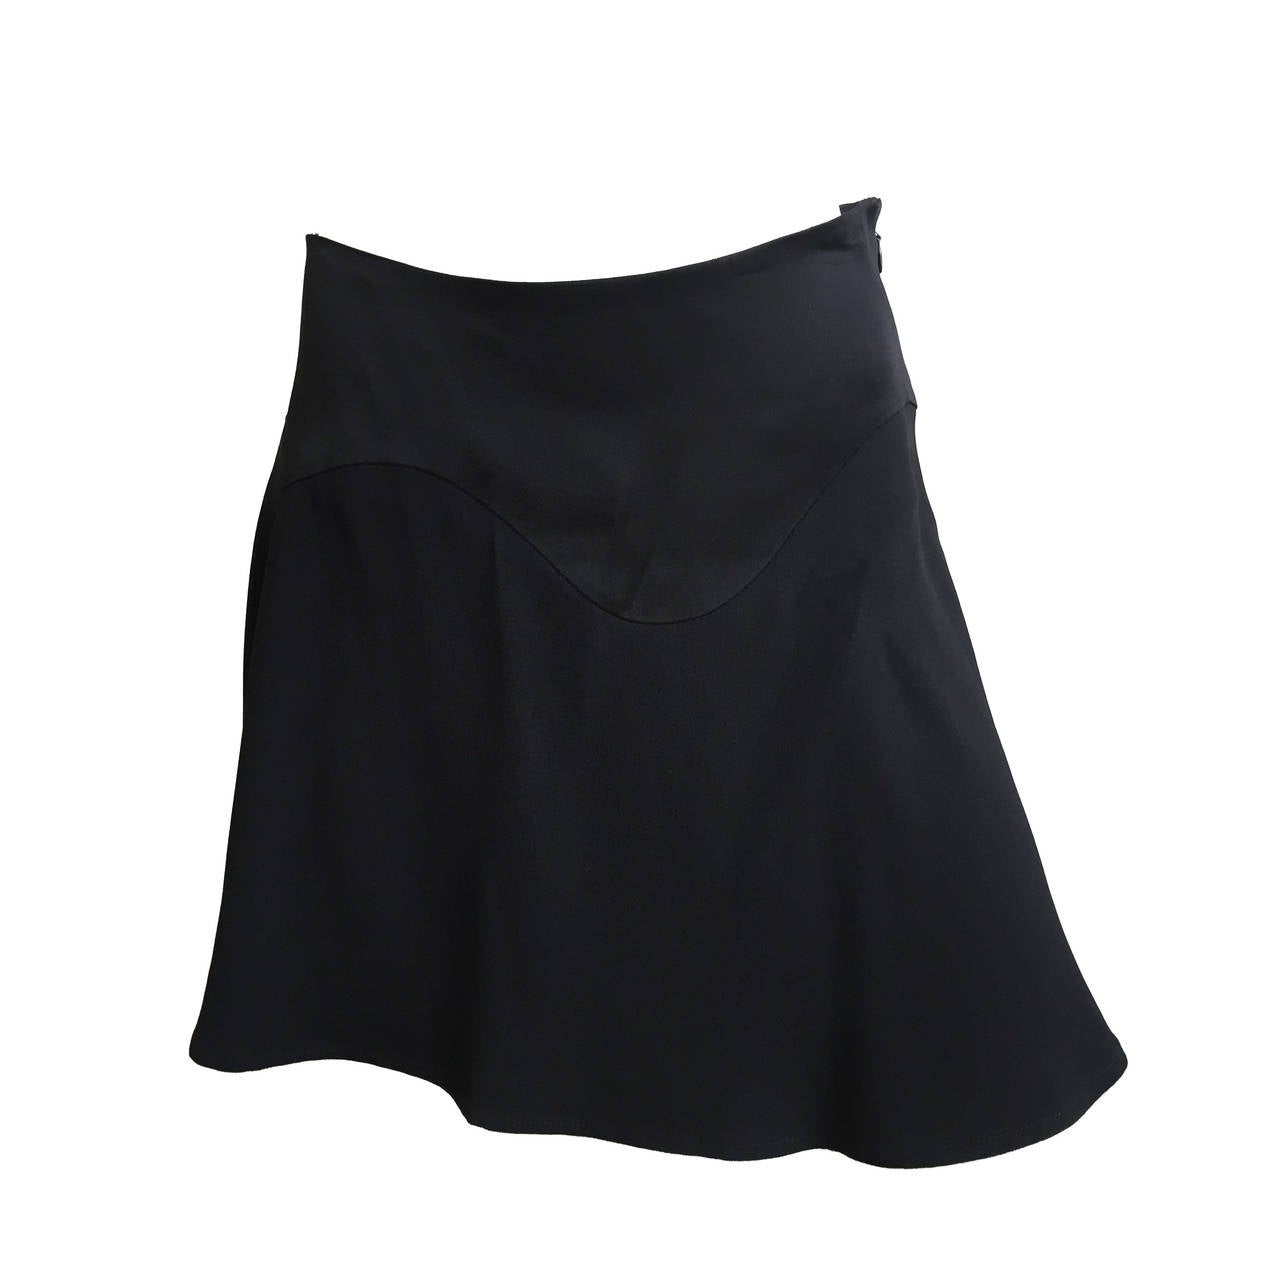 Moschino Cheap and Chic black short sexy skirt size 6. 1